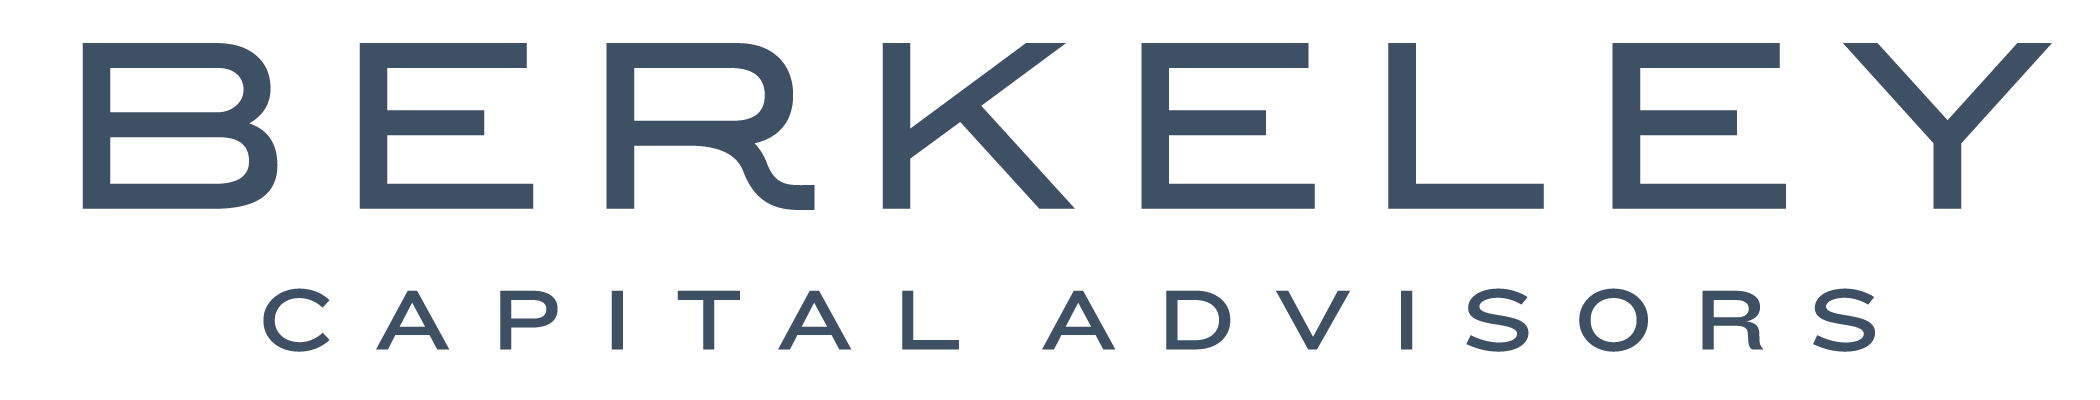 Berkley Capital Advisors